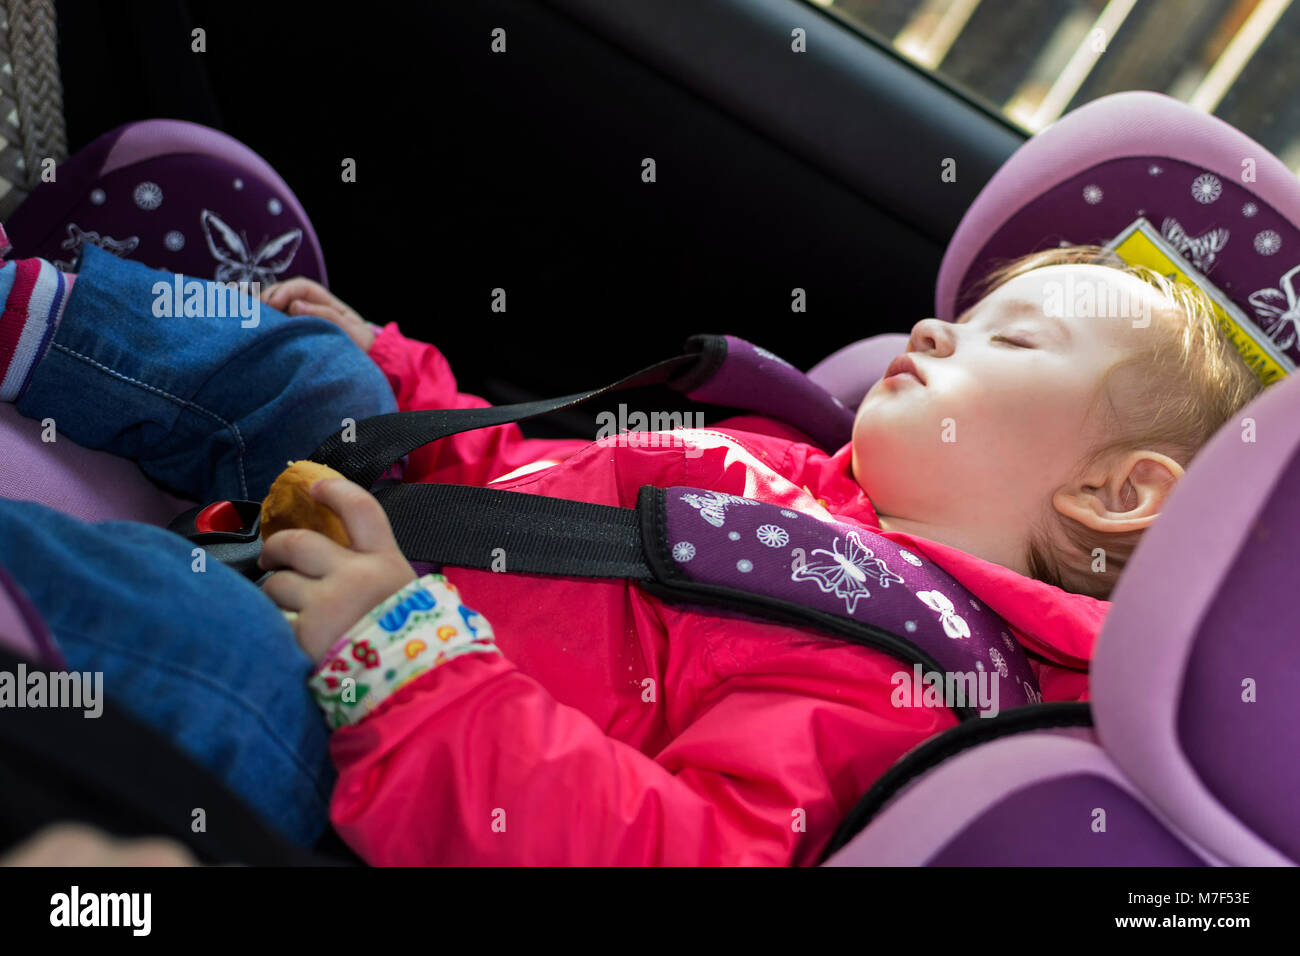 Auto Sessel Sleeping Toddler Automobile Stockfotos And Sleeping Toddler